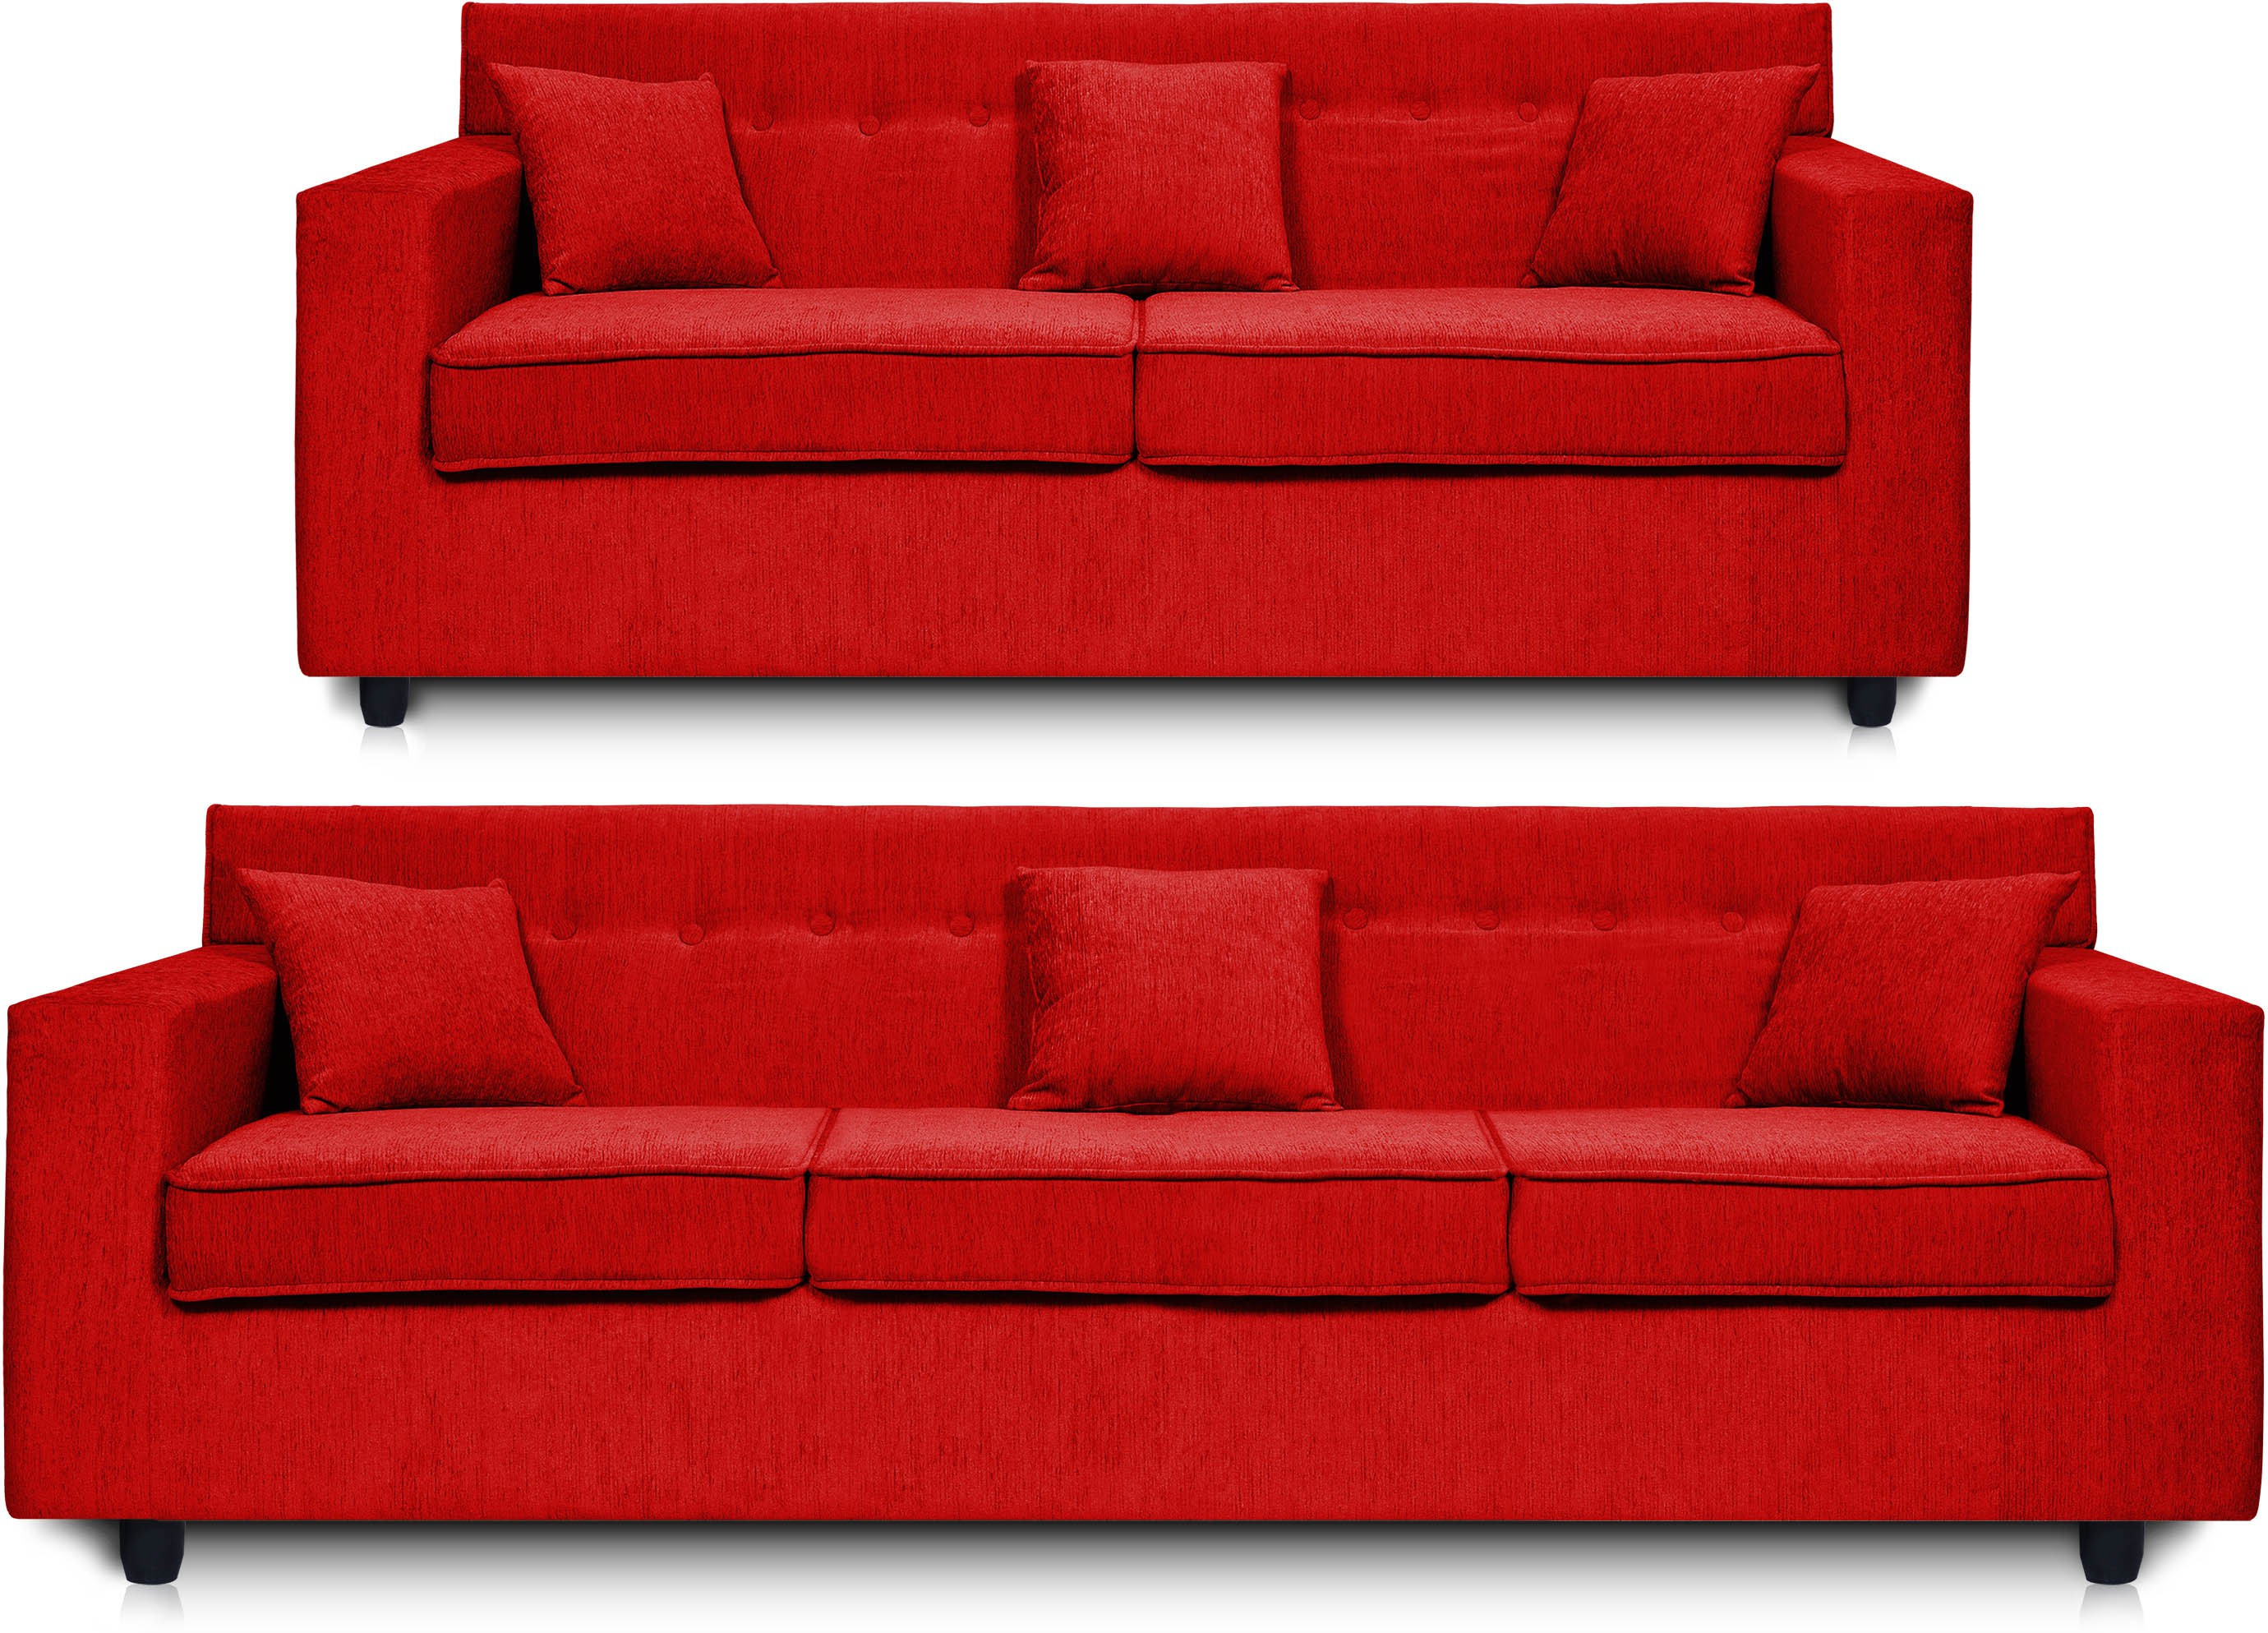 Dolphin Solitaire Fabric 3 + 2 Red Sofa Set